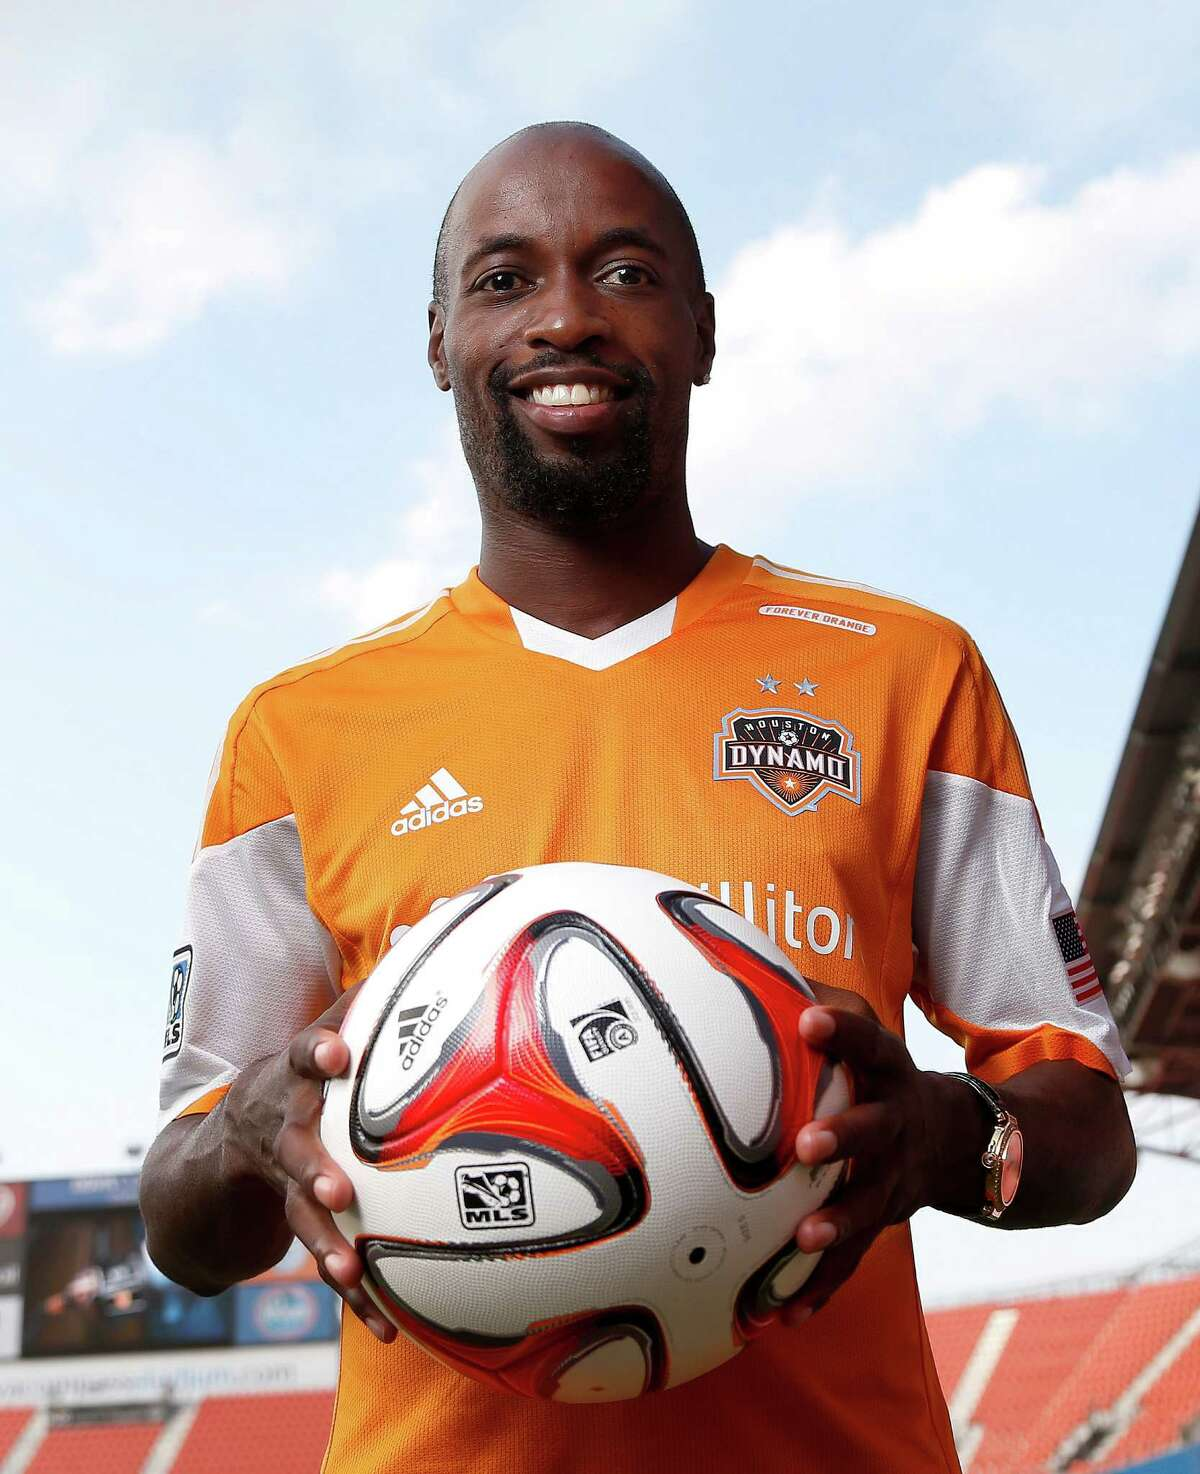 Houston Dynamo's new player DaMarcus Beasley poses for a portrait after a press conference to introduce him at the BBVA Compass Stadium, Thursday, July 24, 2014, in Houston. ( Karen Warren / Houston Chronicle )